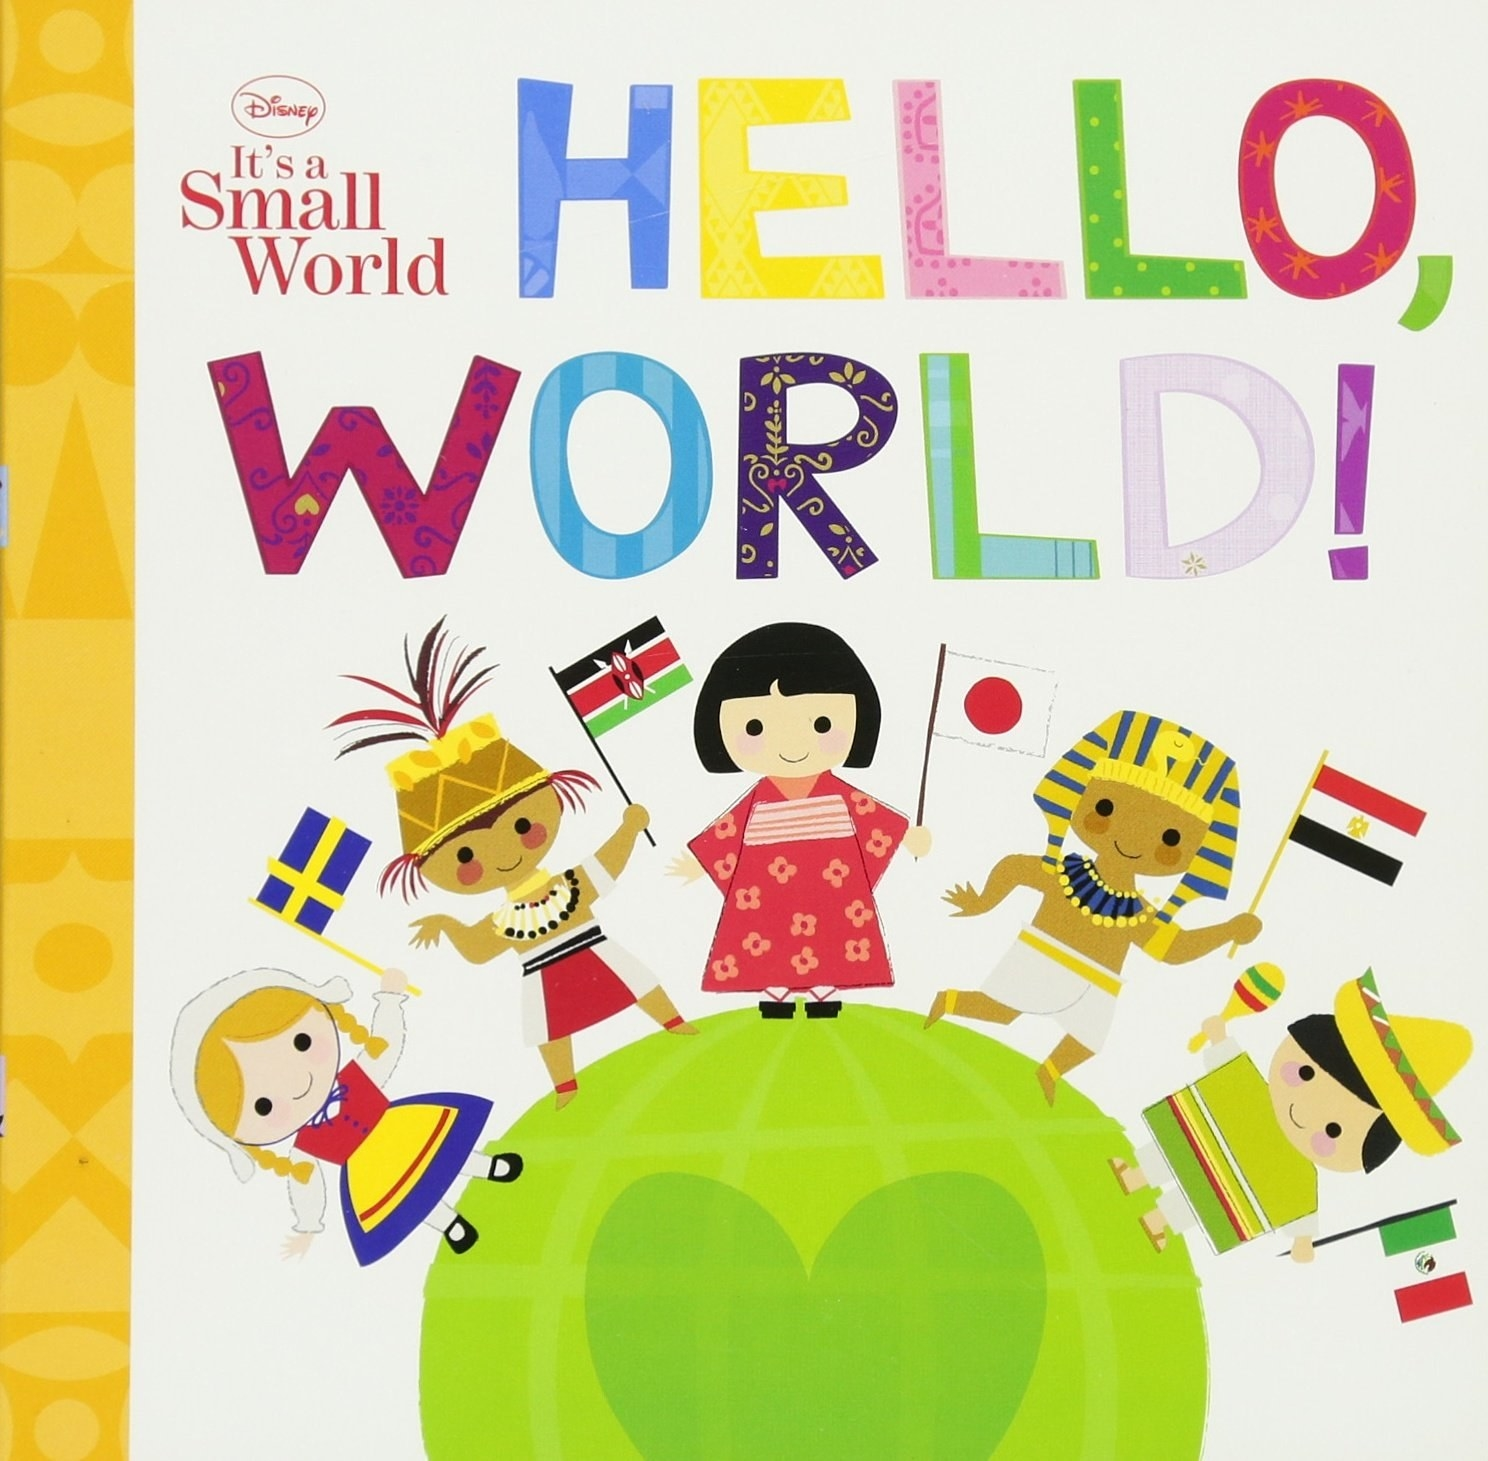 the cover of the it's a small world board book